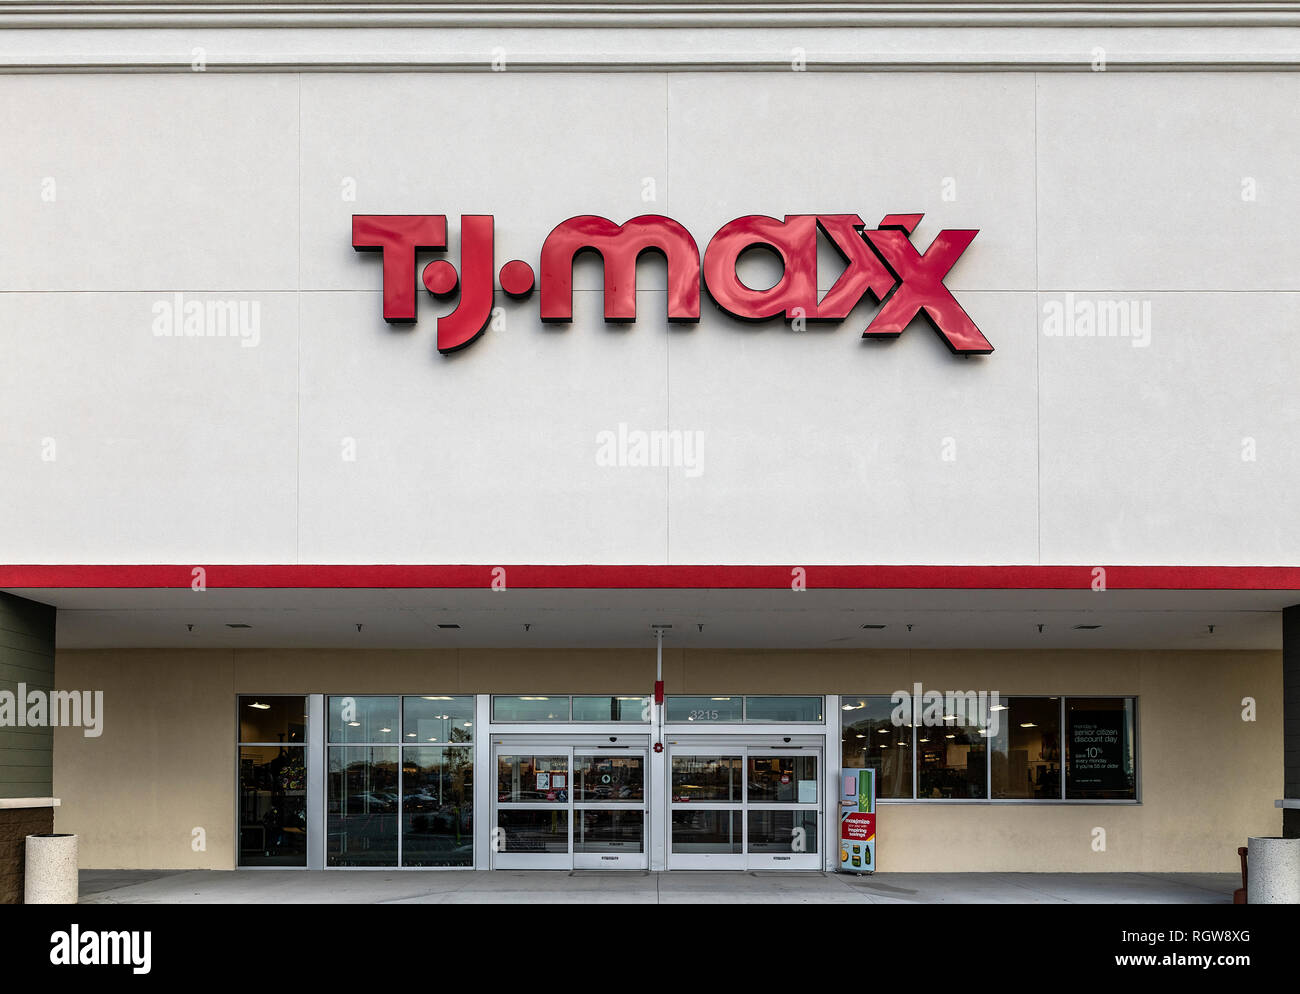 TJ Max deparment store exterior. - Stock Image